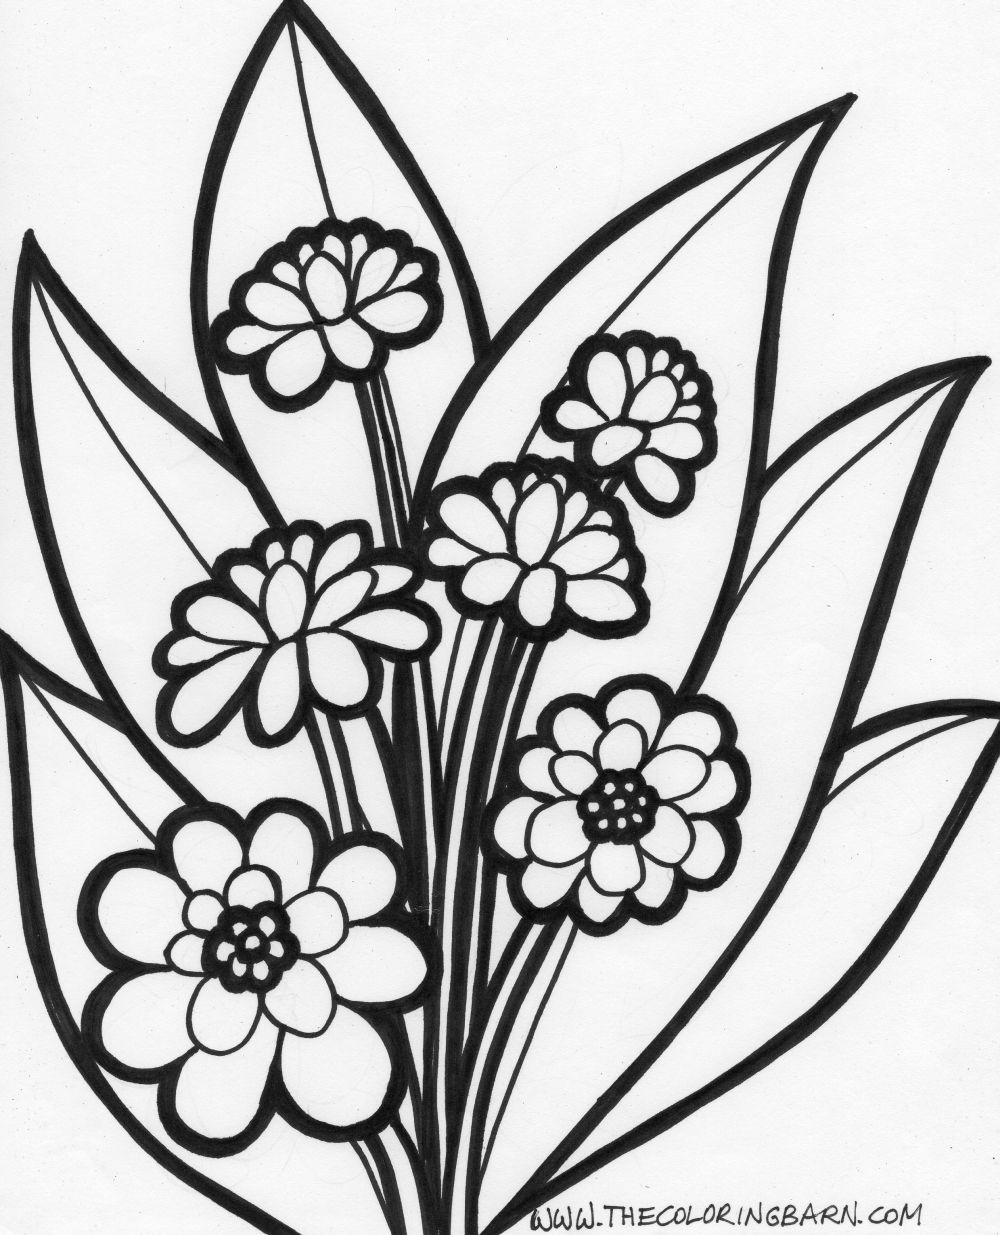 children coloring pages - coloring pages with flowers free coloring pages of flowers coloring kids coloring pages